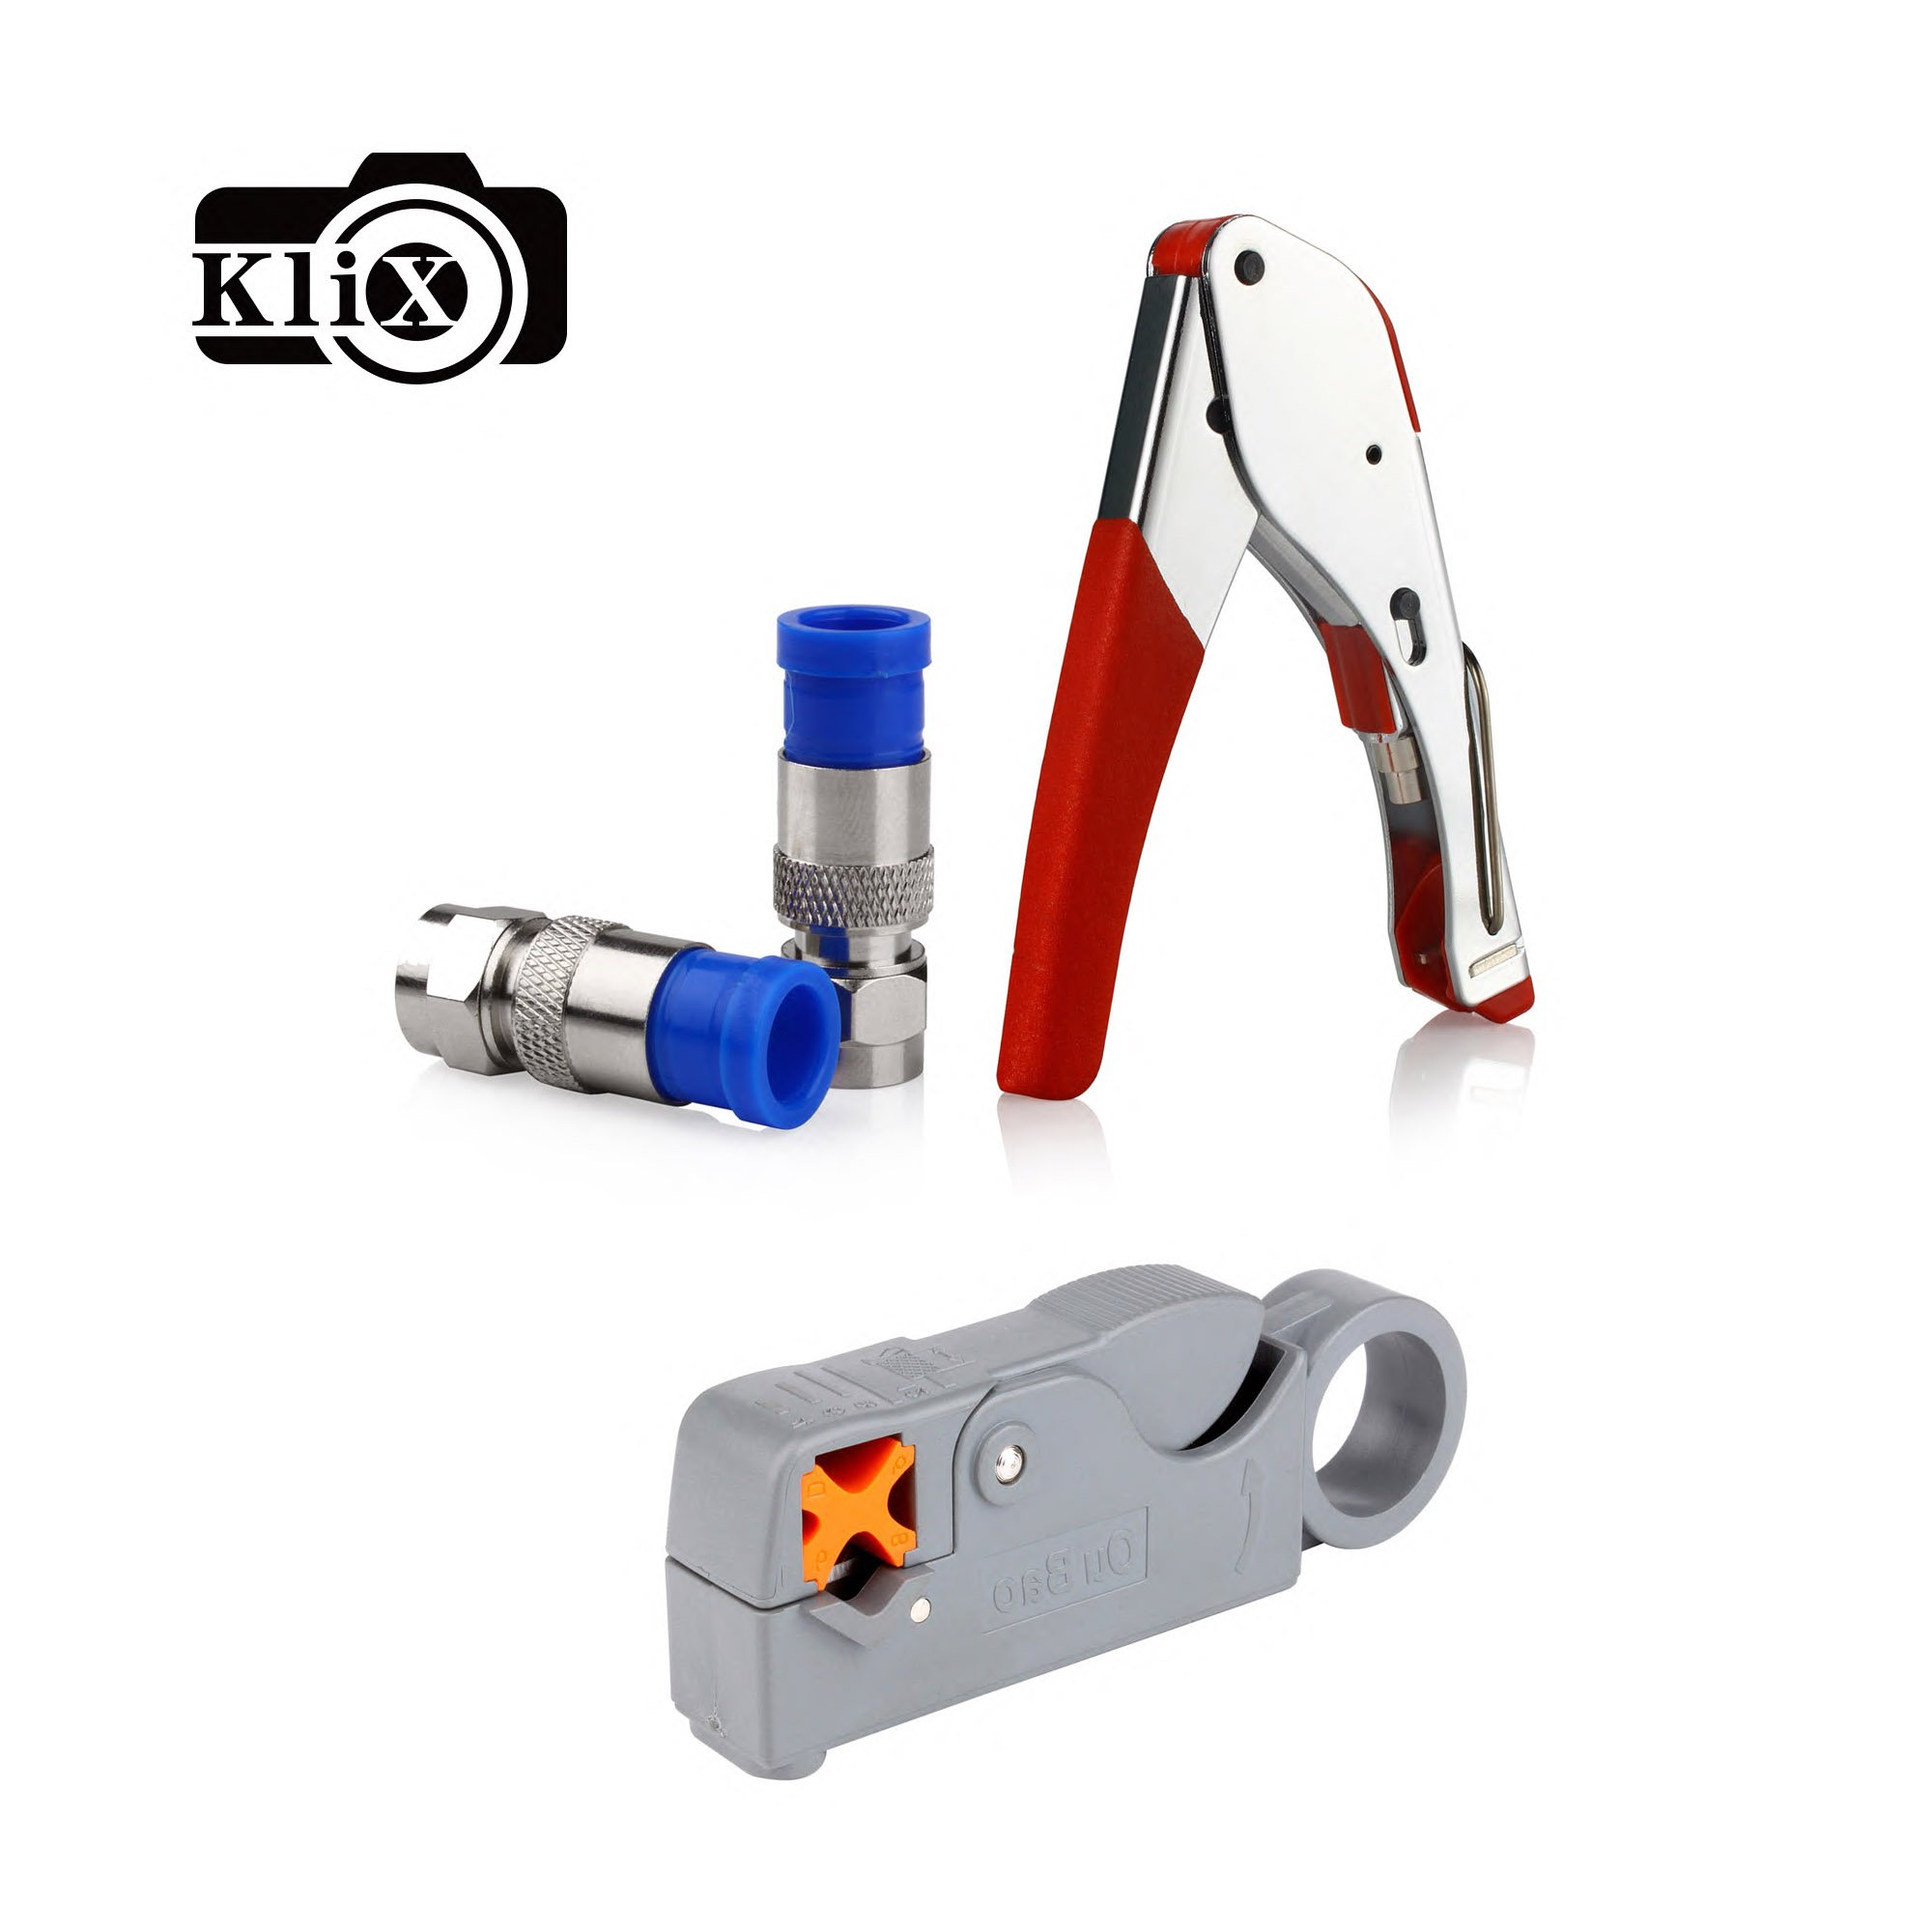 Klix Compression for Connector Tool Cable Stripper RG6 Fitting -Red by Klix (Image #5)